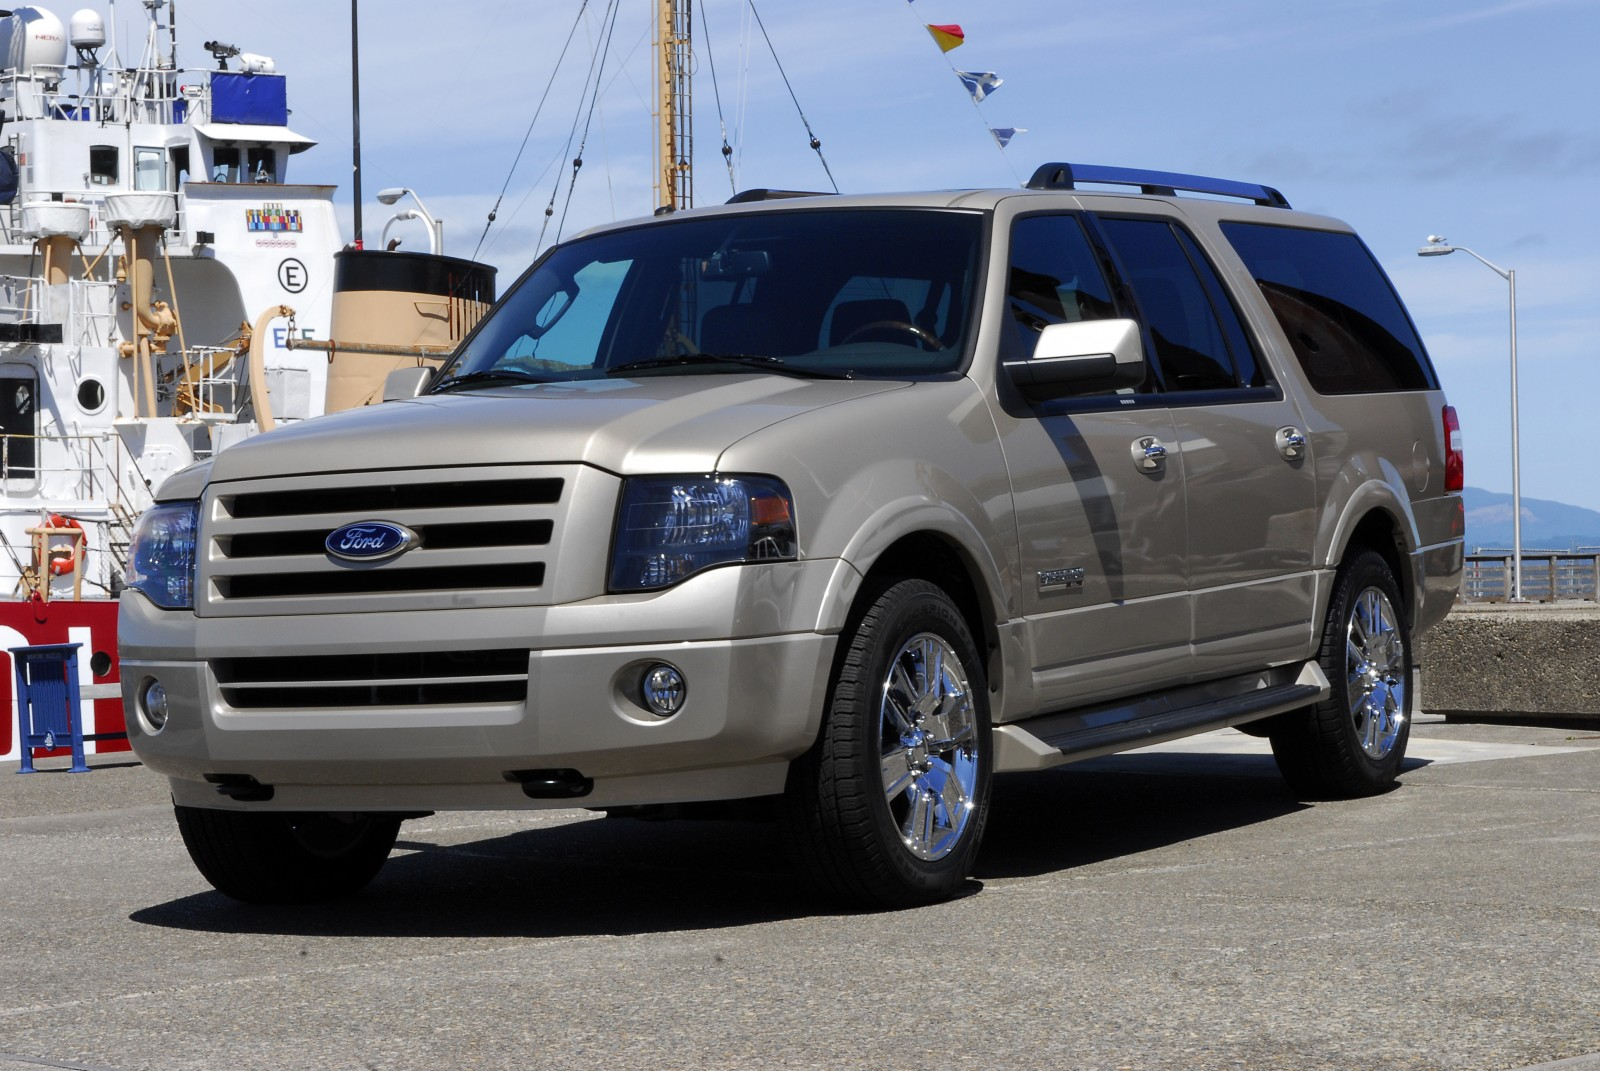 Ford Expedition 2010 foto - 5